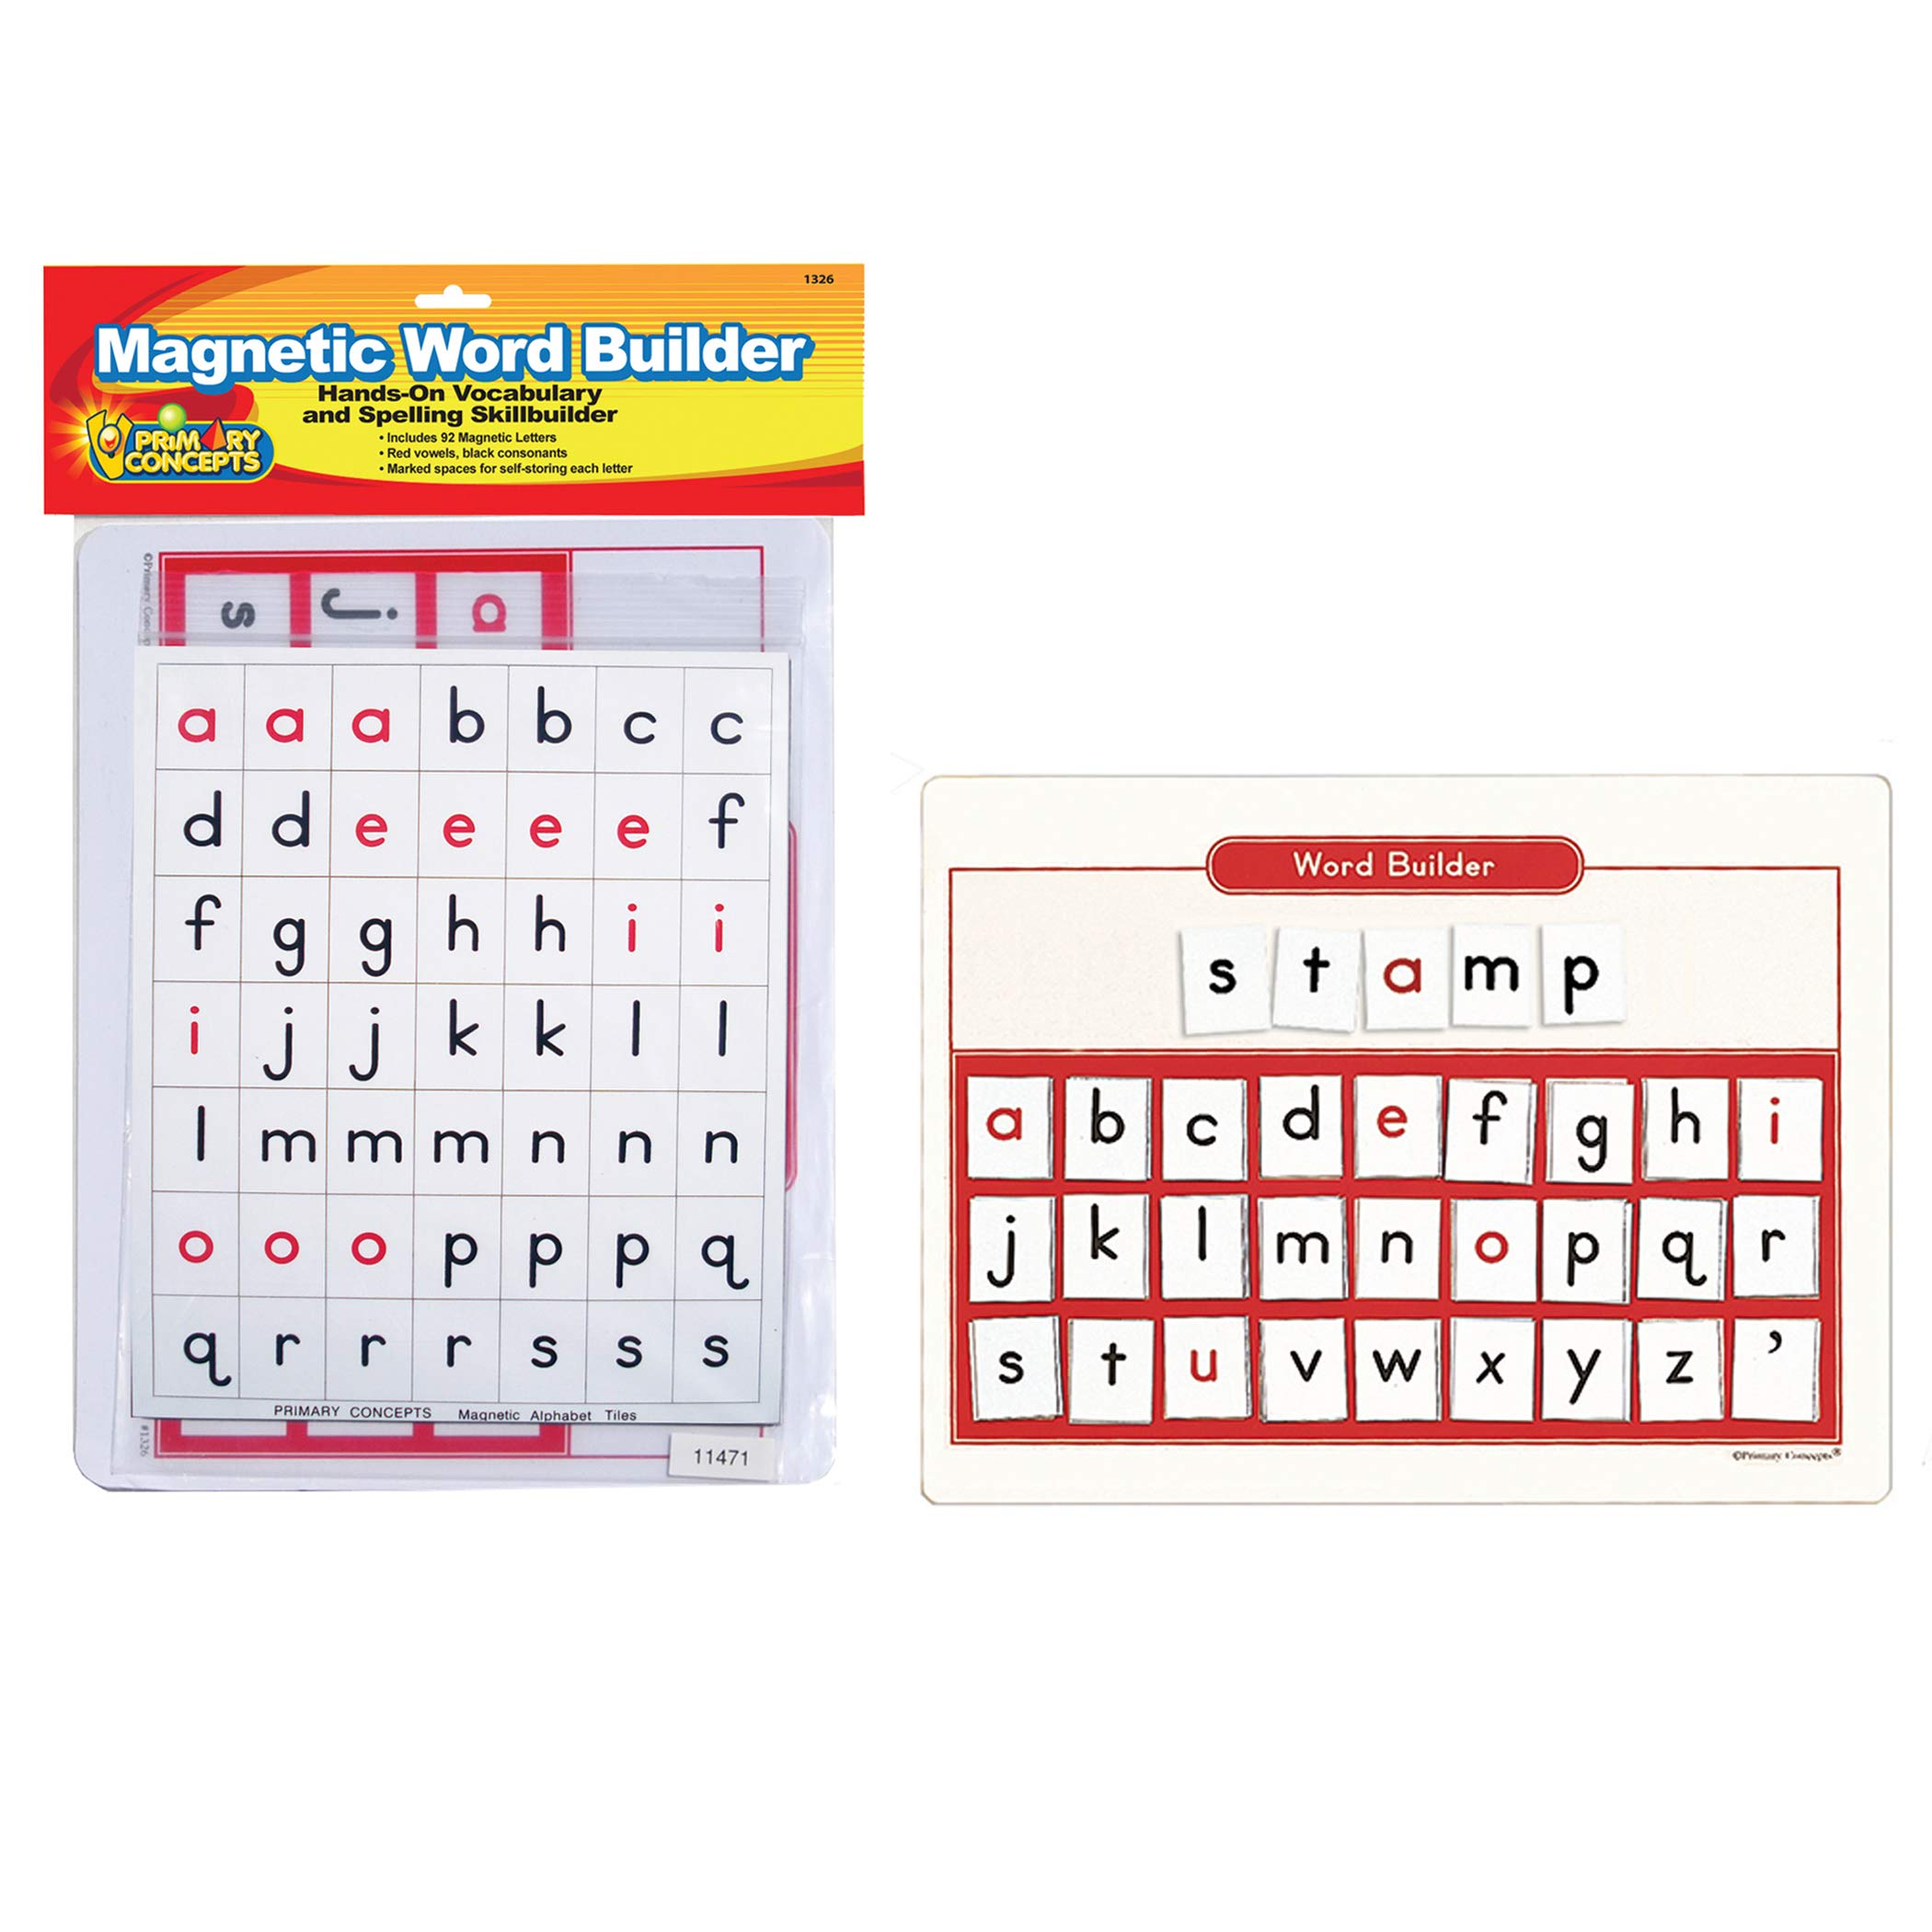 Primary Concepts, Inc PC-1326 Magnetic Word Builder Learning kit